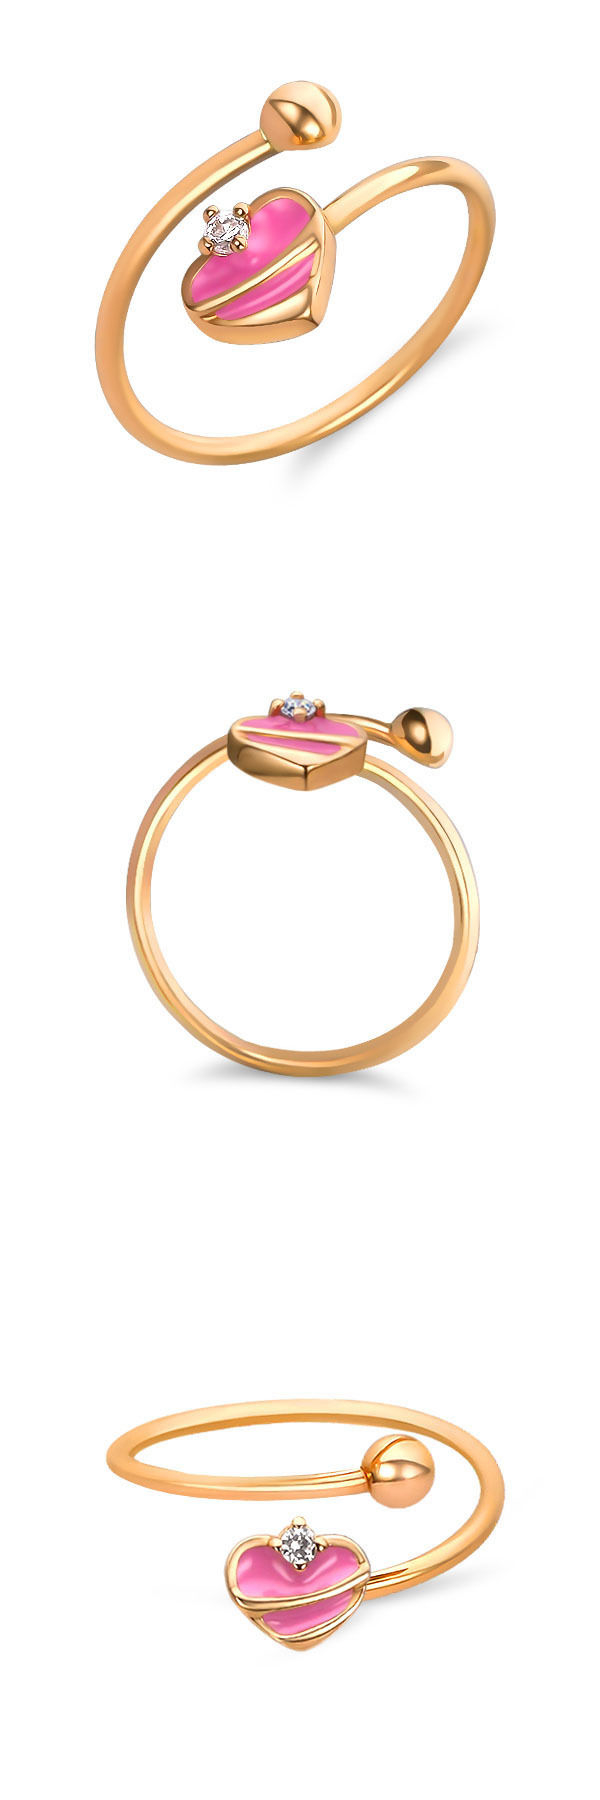 Rings 98477: Childrens 14K Gold Ring | Real Gold Baby Jewelry ...